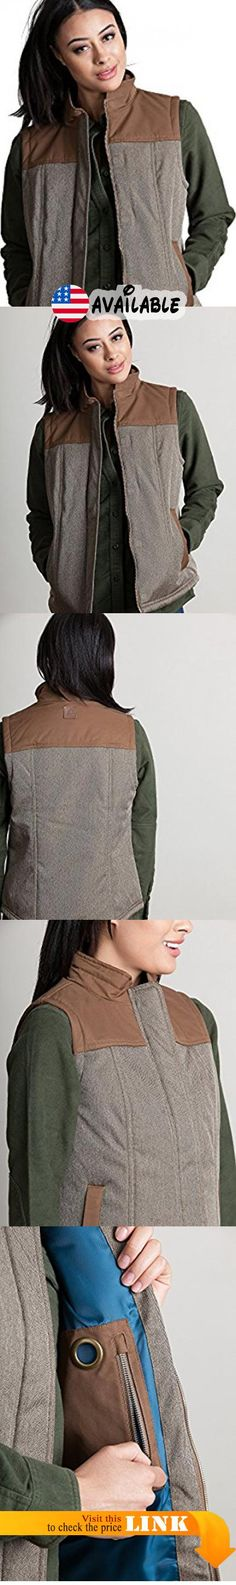 B077BPB2WW : Overland Sheepskin Co Albion Herringbone Insulated Vest. Our insulated outdoor vest serves as your outer layer or an insulating layer beneath a coat. Lightweight with a buoyant feel the herringbone is designed to keep you warm dry and good looking. The poly fabric is trimmed with contrast waterproof fabric at the collar and yoke and pocket trim. Zip front wind guard placket has hidden magnet closures. Polyester lining. Shell: 100% Polyester (water resistant).